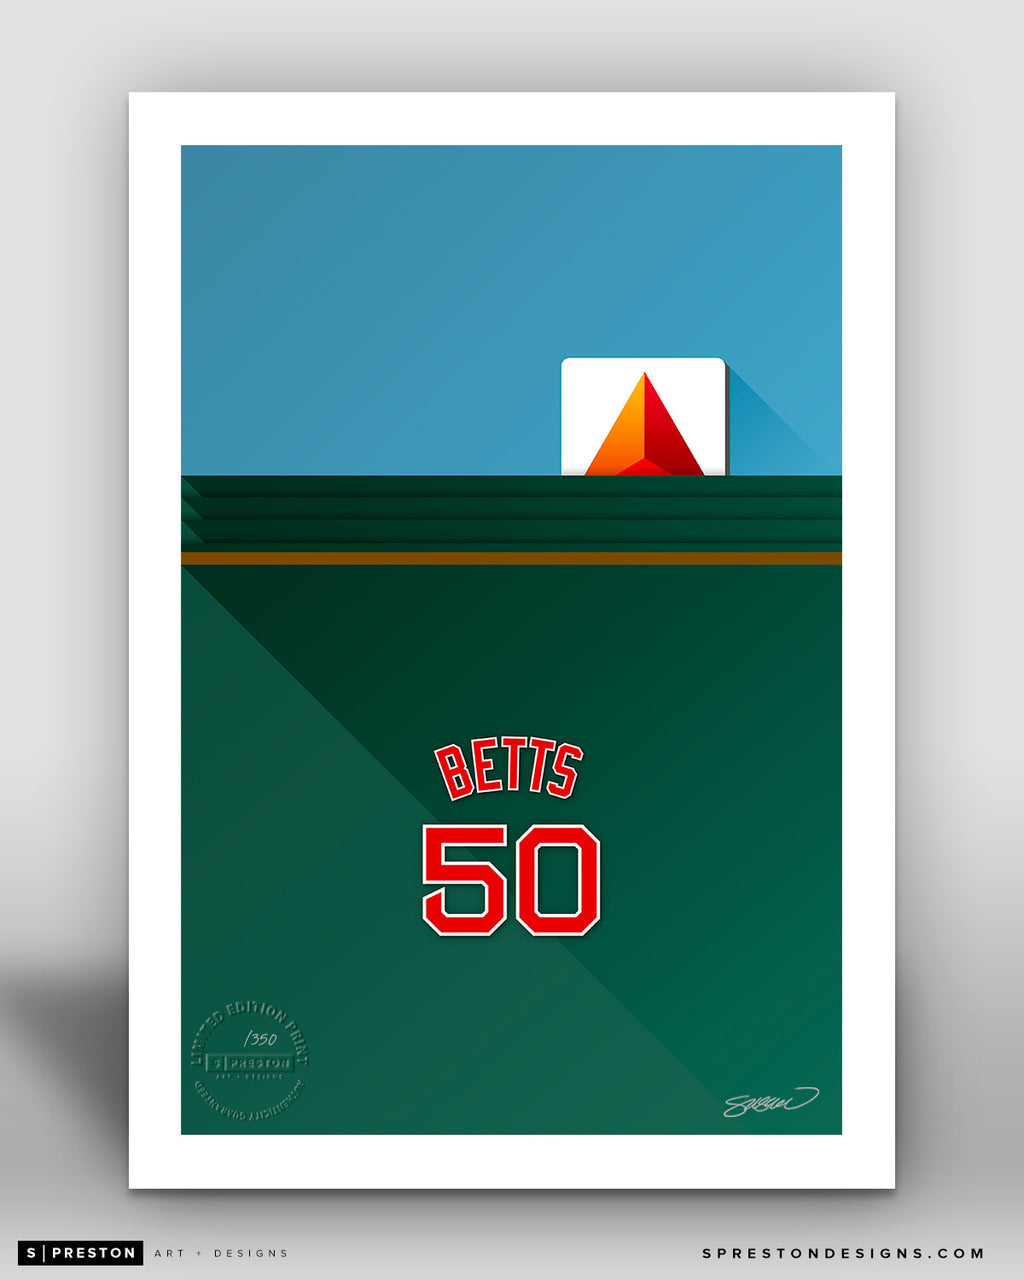 Minimalist Fenway Park - Player Series - Mookie Betts - Boston Red Sox - S. Preston